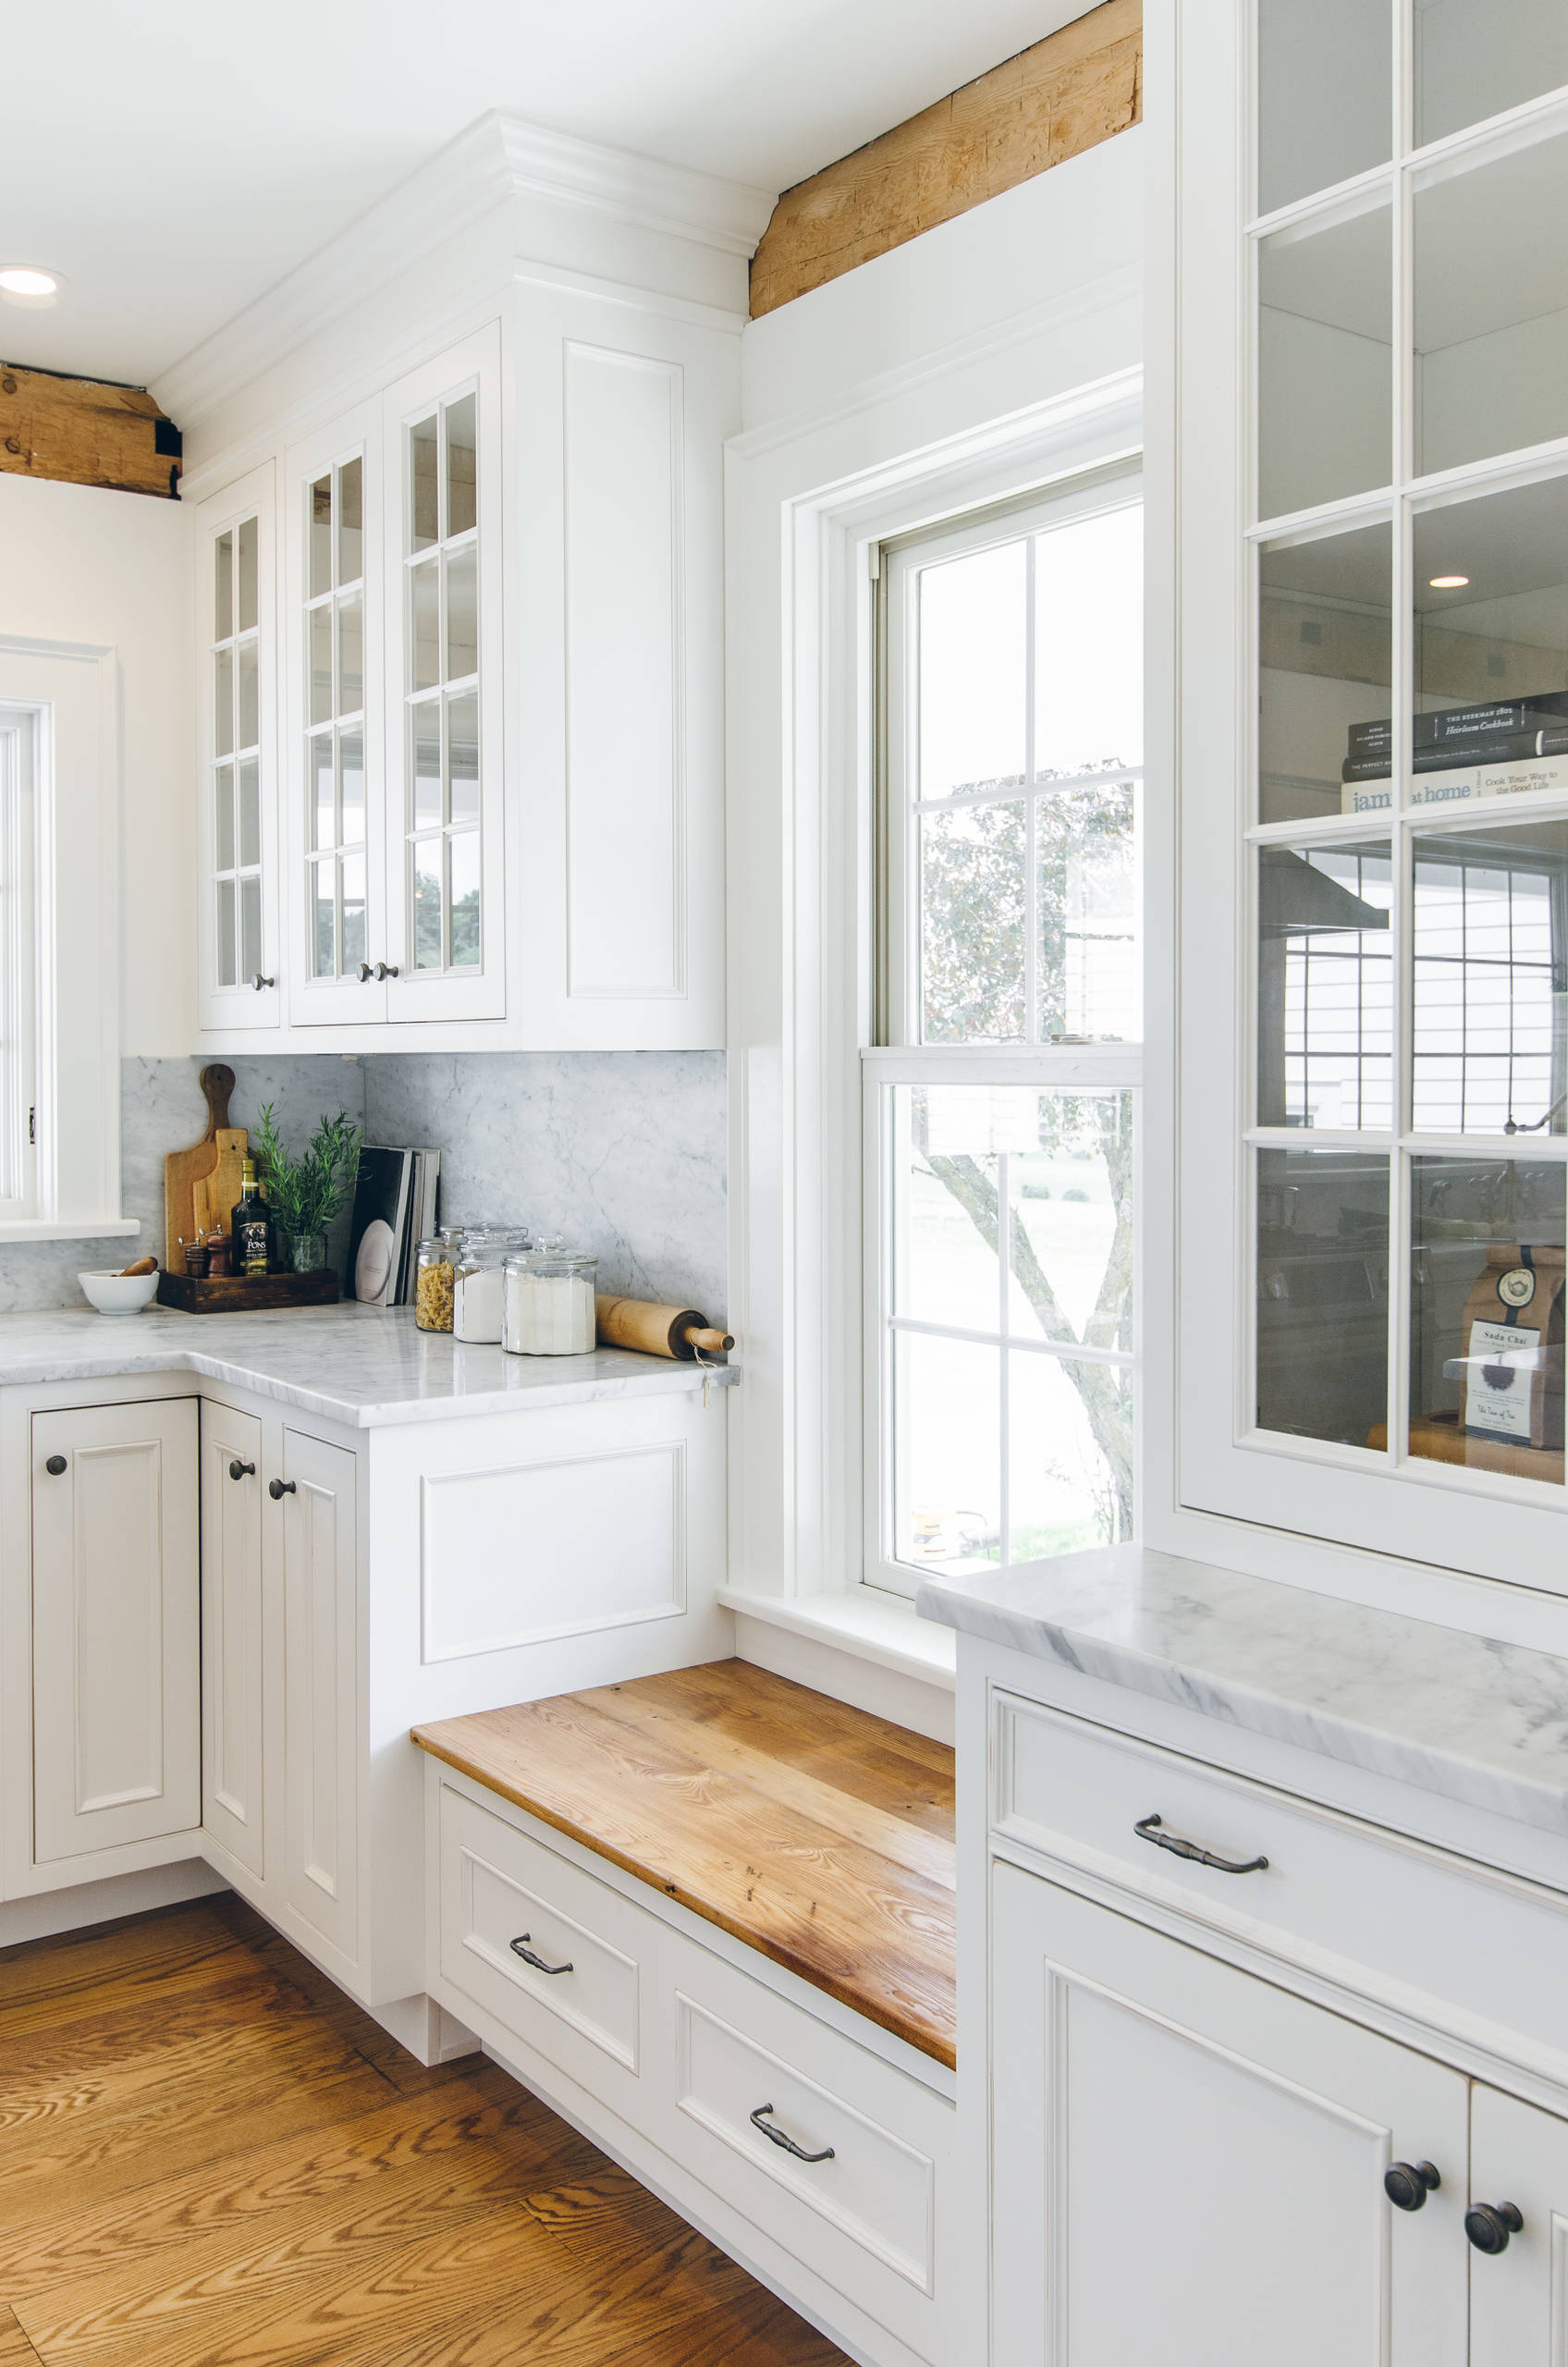 75 Beautiful Kitchen With An Island Pictures Ideas December 2020 Houzz